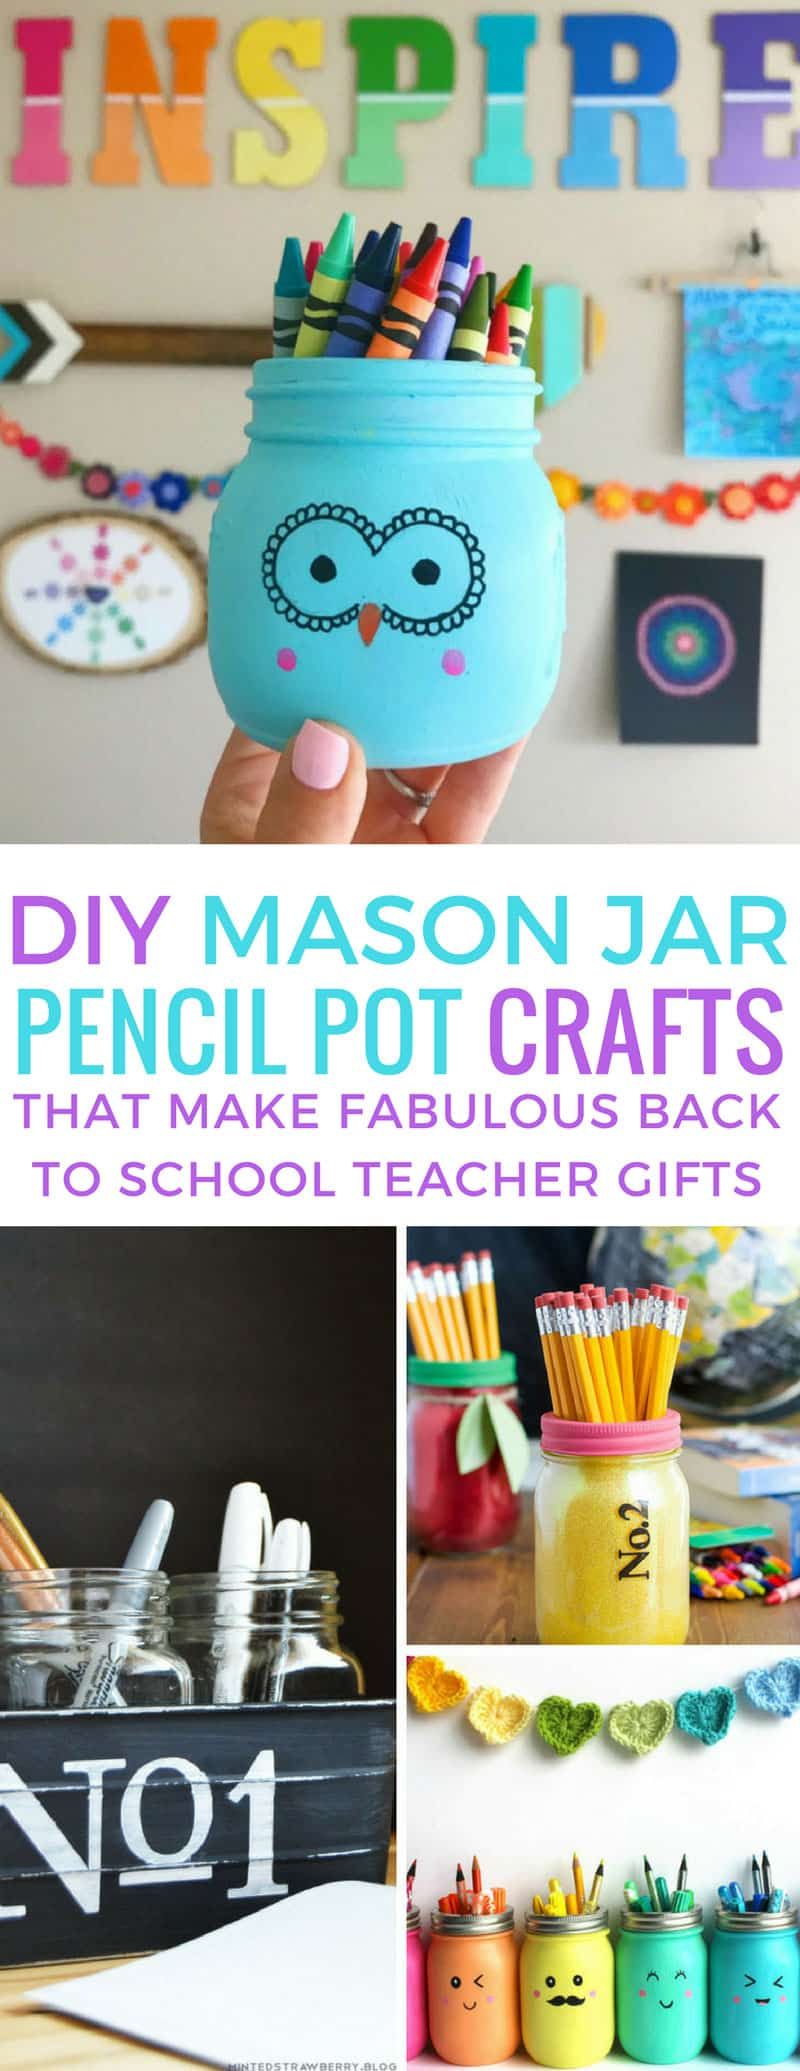 These DIY mason jar painted pencil pots are super cute! Thanks for sharing!